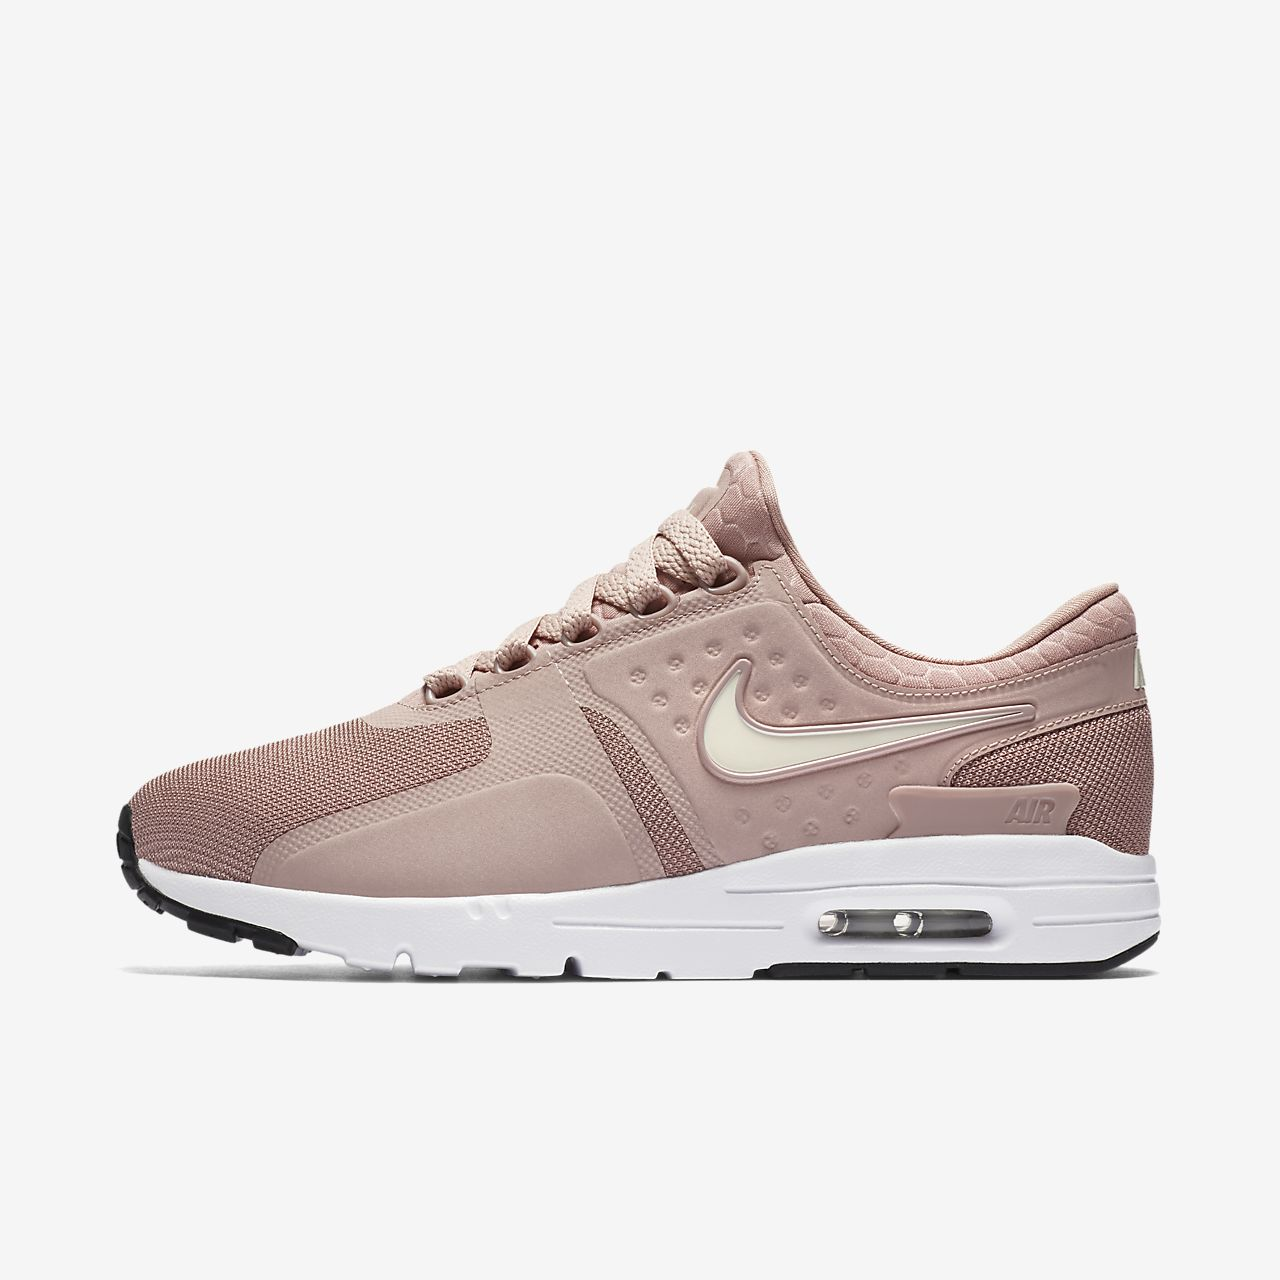 nike air max zero women 39 s shoe. Black Bedroom Furniture Sets. Home Design Ideas